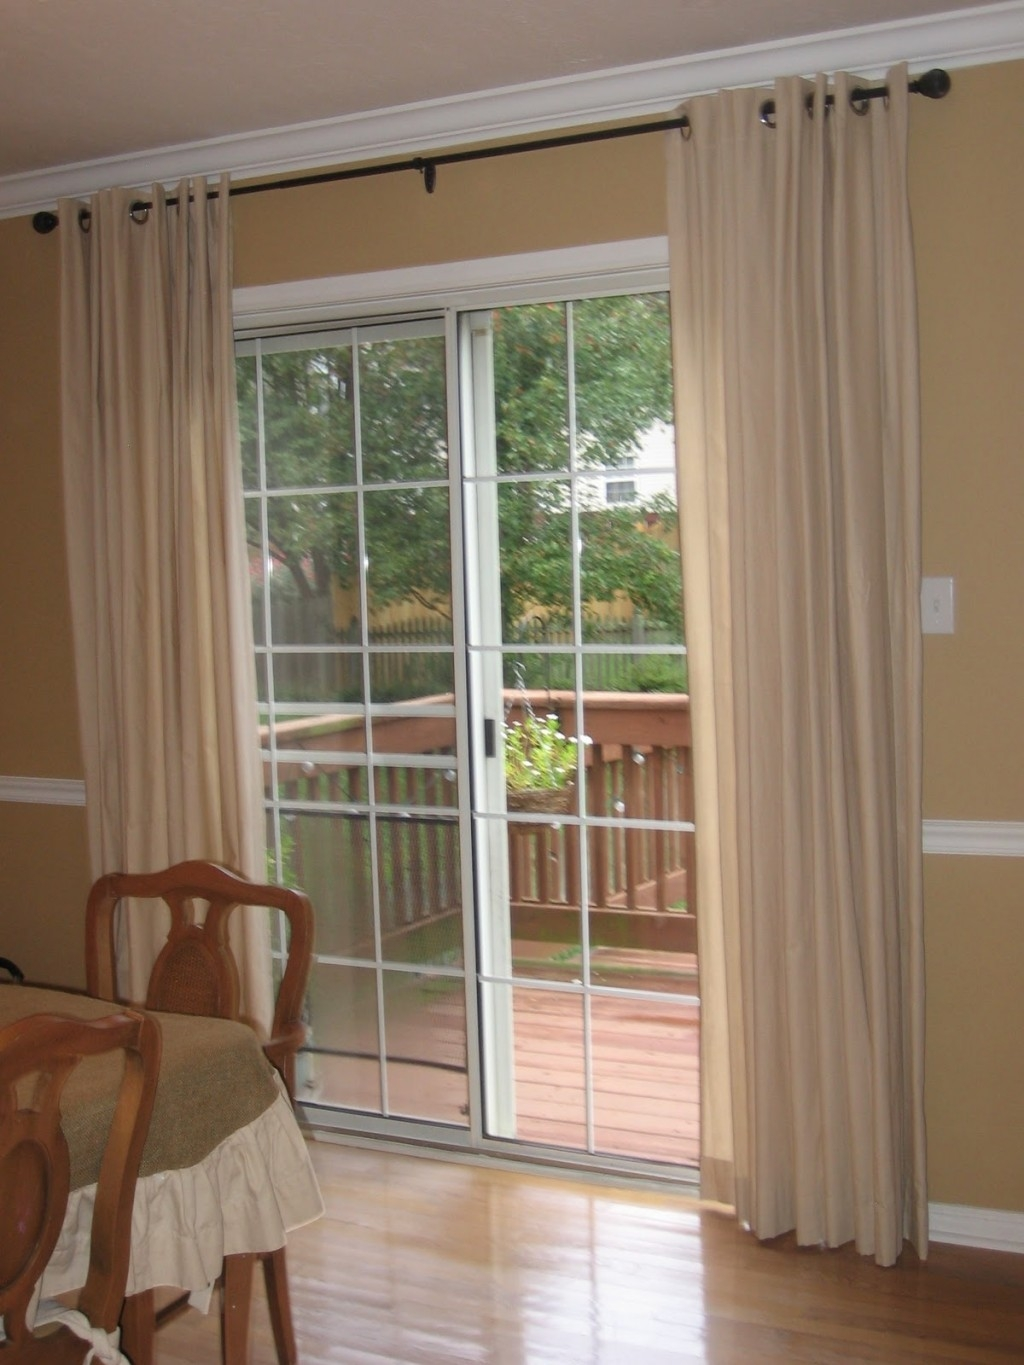 Extra Long Curtains For Sliding Glass Doorspatio doors blackout curtains for sliding patio doors triple lace